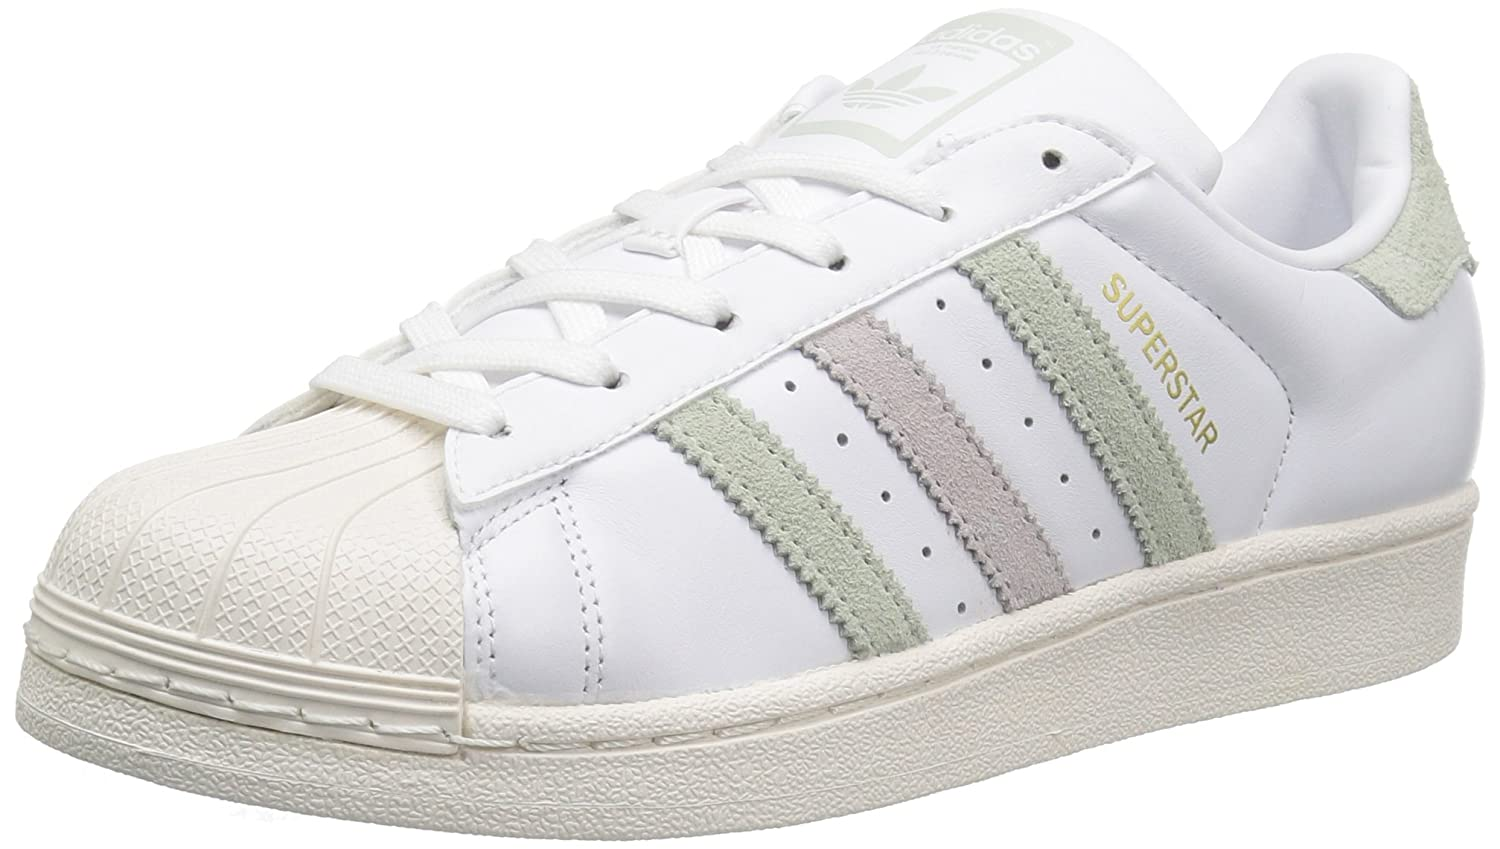 adidas Women's Originals Superstar B01HNF8BFK 8 B(M) US|White/Linen Green Ice Purple Fabric